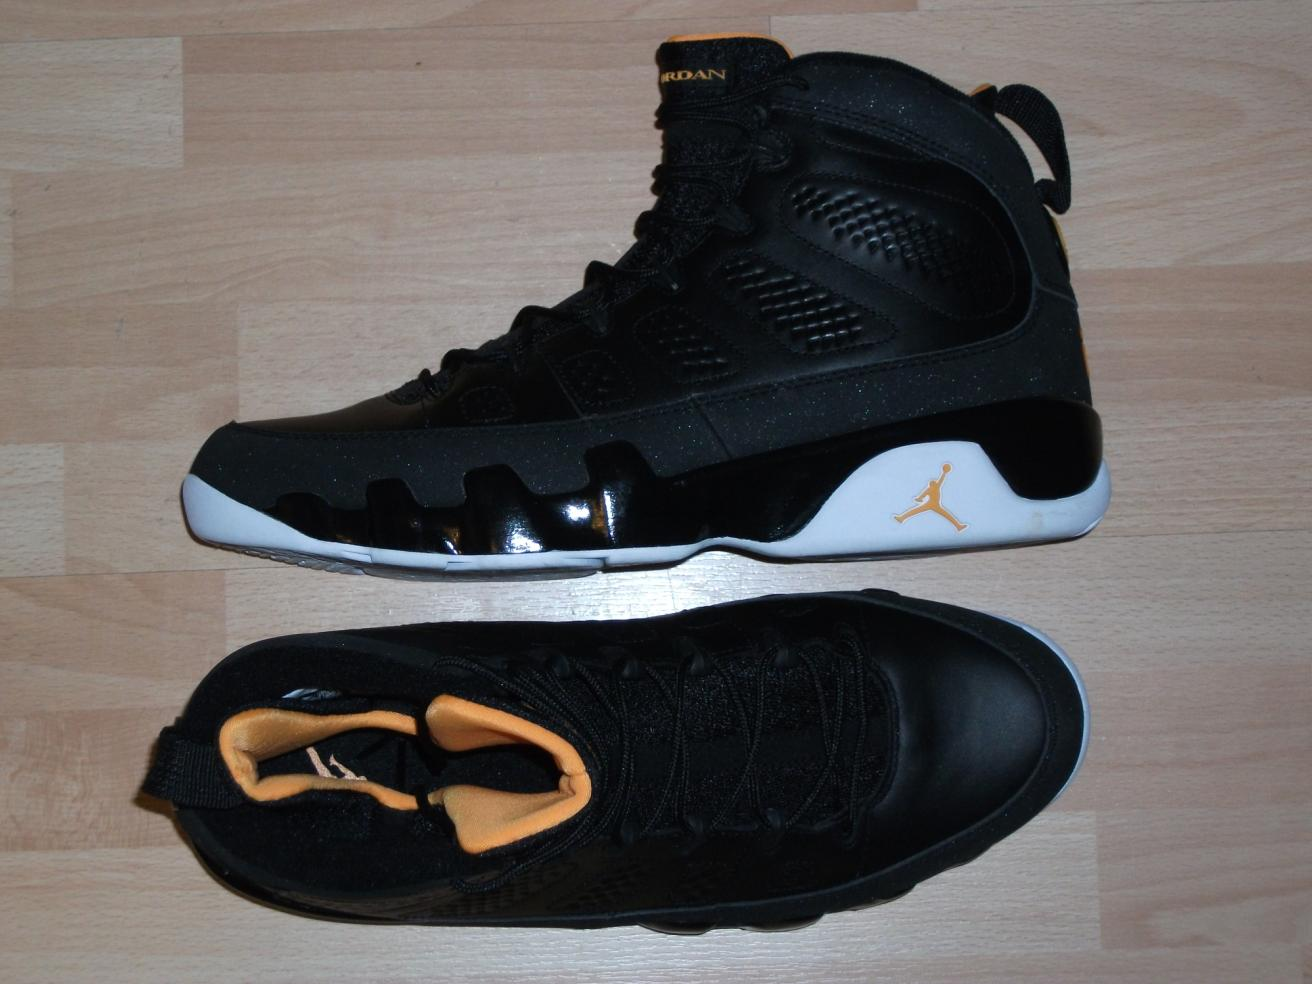 Jordan shoes hookup